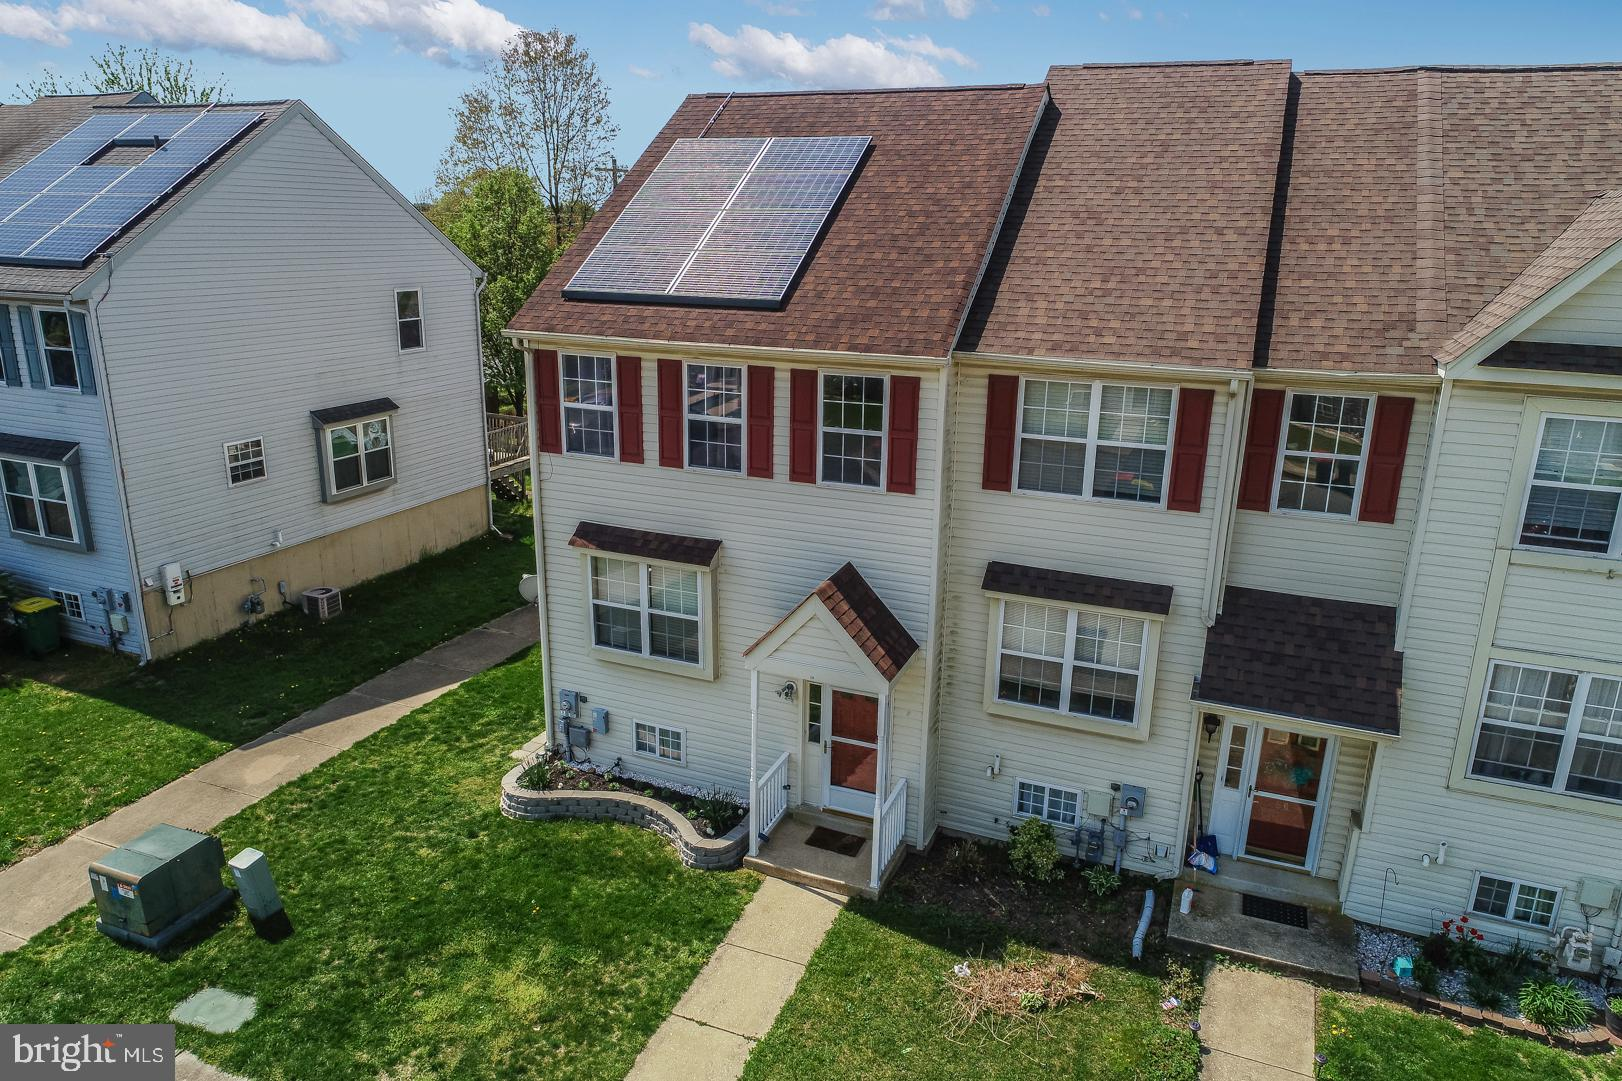 Just in time for a summer purchase, here is the home you have been looking for! Check out this great 3 Bedroom townhome located in Appoquinimink school district. This location in Middletown, Delaware is wonderful! You can walk to shopping, restaurants, parks, annual parades, and carnivals.  This end unit stands out on the street with the raised flower bed out front.  The first floor features a large great room with access to your rear deck. There is a breakfast bar separating the kitchen from the dining space and great room. The open floor plan allows easy entertaining throughout this level. You will love this kitchen with white cabinets, updated knobs, cabinet crown molding, tiled floor, and brand-new stainless appliances (April 2019)! There is also a half bath located on the main floor. The upper level has a large master bedroom with vaulted ceilings which really makes this space comfortable. This room also features a large closet and ceiling fan. There is a shared full bath and two more bedrooms located on this top floor. The basement has been finished into a large rec room and a half bath has been recently added (2017).  There is even a mini wet bar added (2017), which makes this a perfect rec room.  This basement could be a movie room, toy room, game room, or whatever your heart desires. A convenient walkout door allows easy access to your backyard. The backyard has new fencing (2018) and new sod was just laid with a rain bird irrigation system.   What a great spot for your first BBQ! The leased solar panels will keep your utility bills lower, and the roof is only 4 years old. There is a $50 a month solar panel lease fee. Other features include a nest thermostat, new high efficient slider door (2016), and updated air conditioner (2015). Set up your showing today.